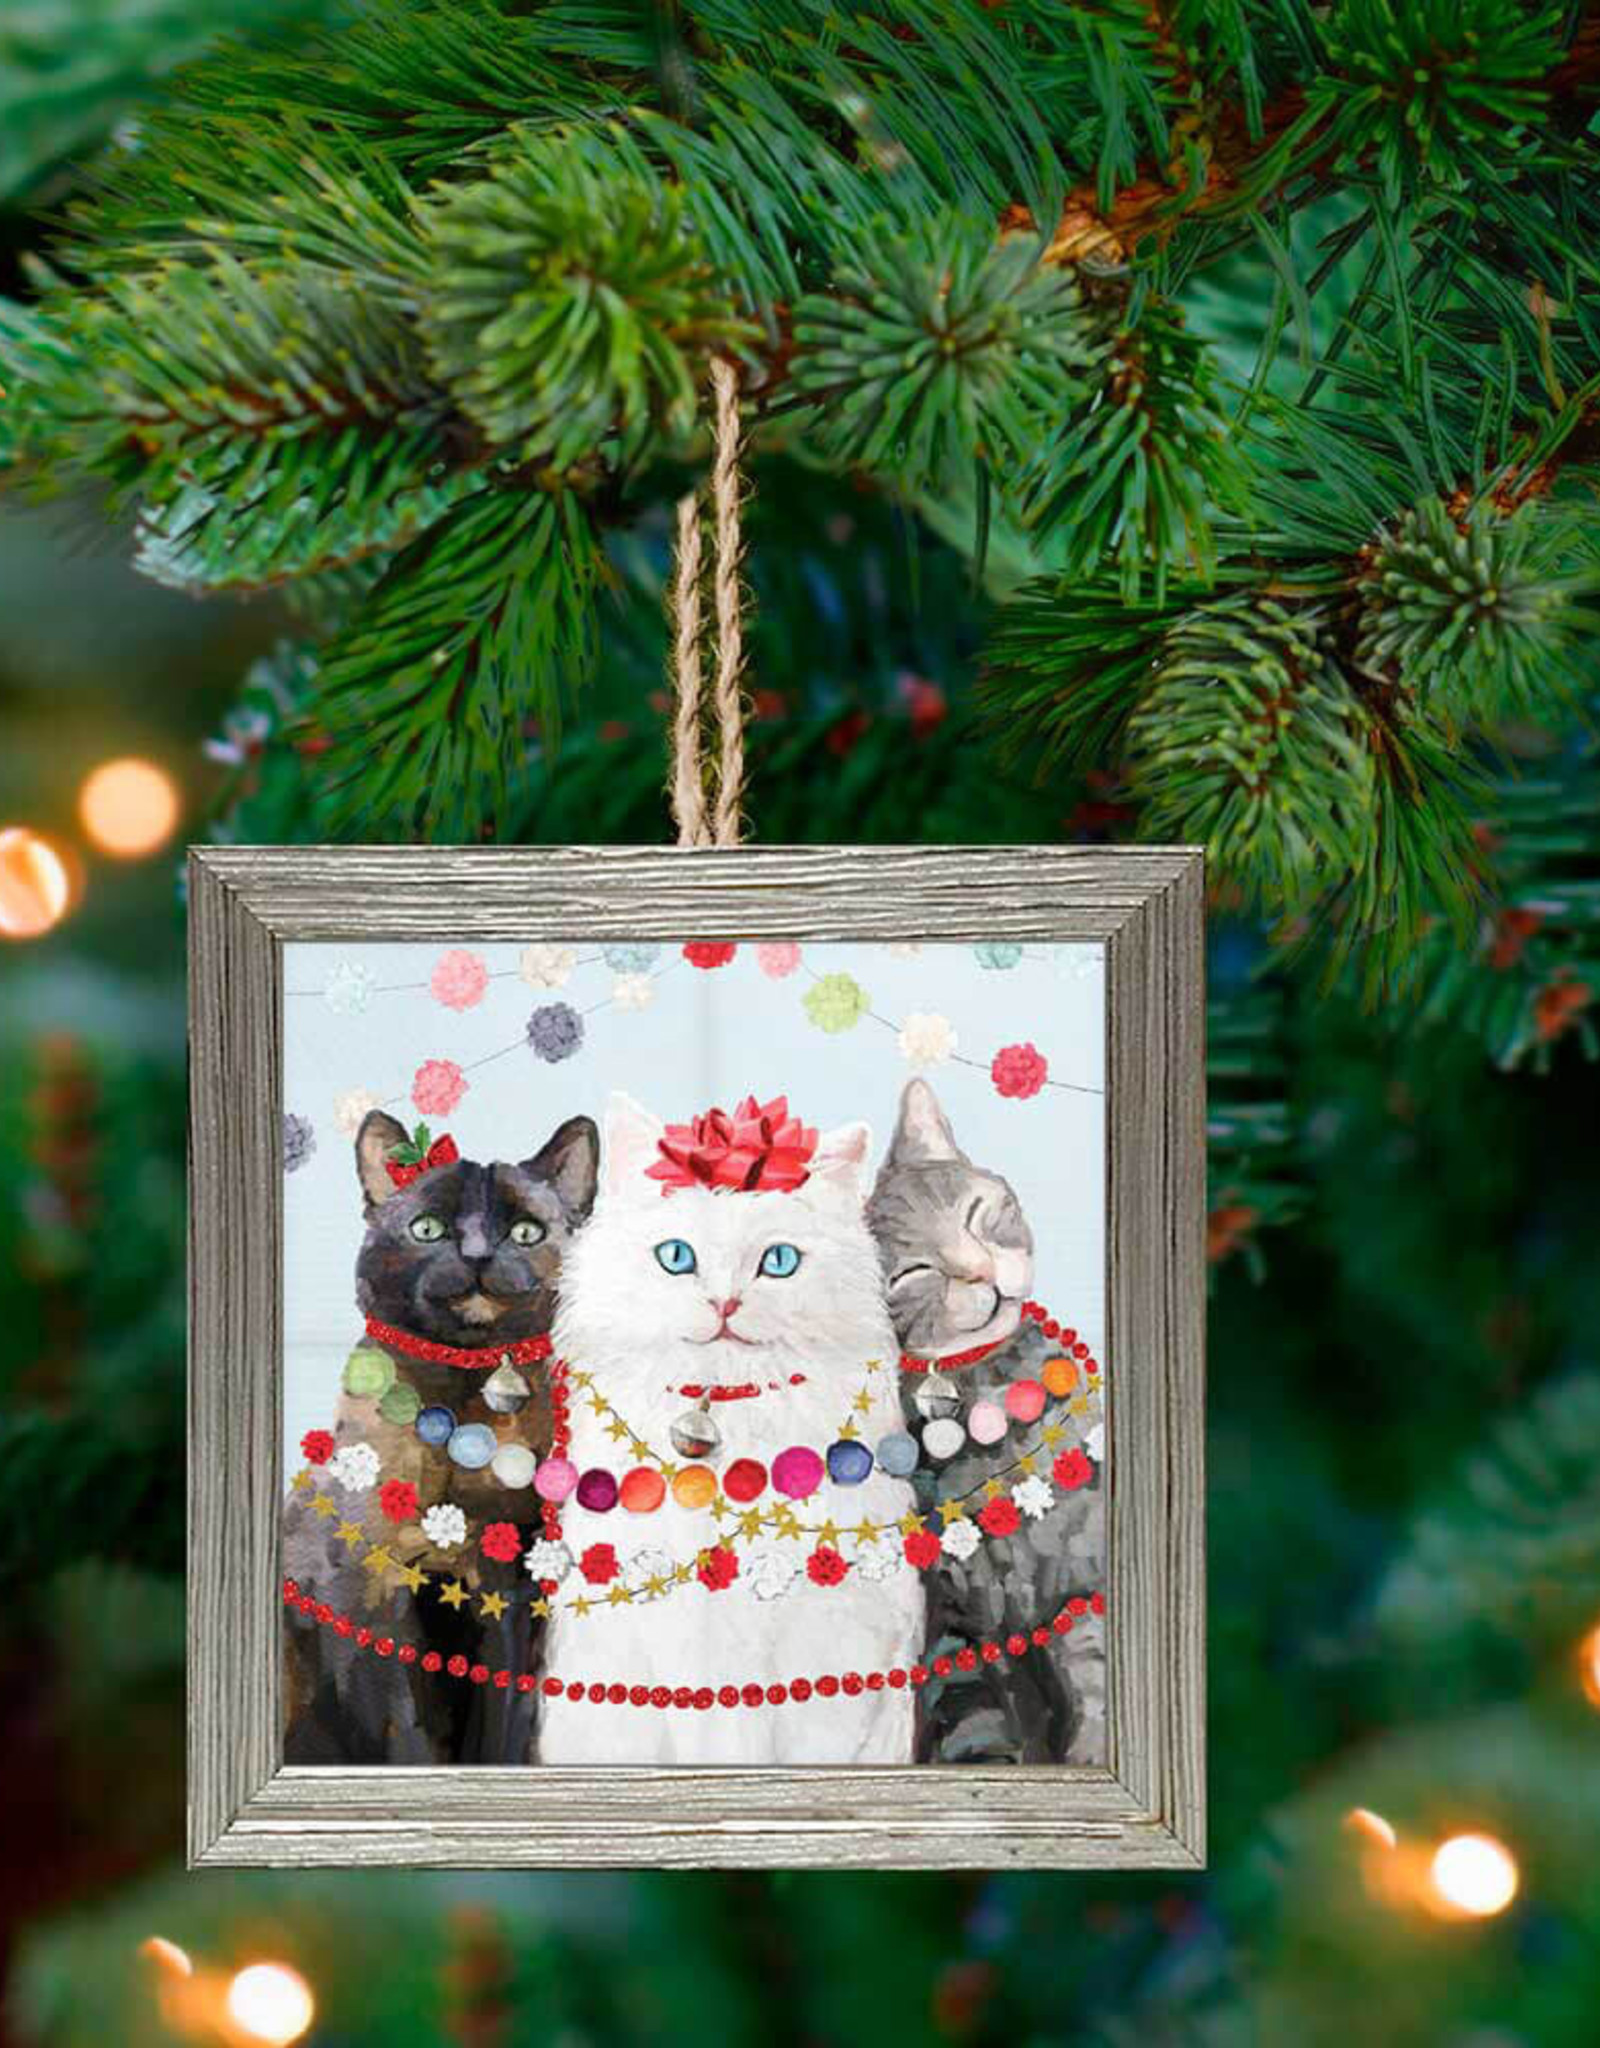 Greenbox Art Holiday - Festive Cat Trio Framed Wooden Ornament